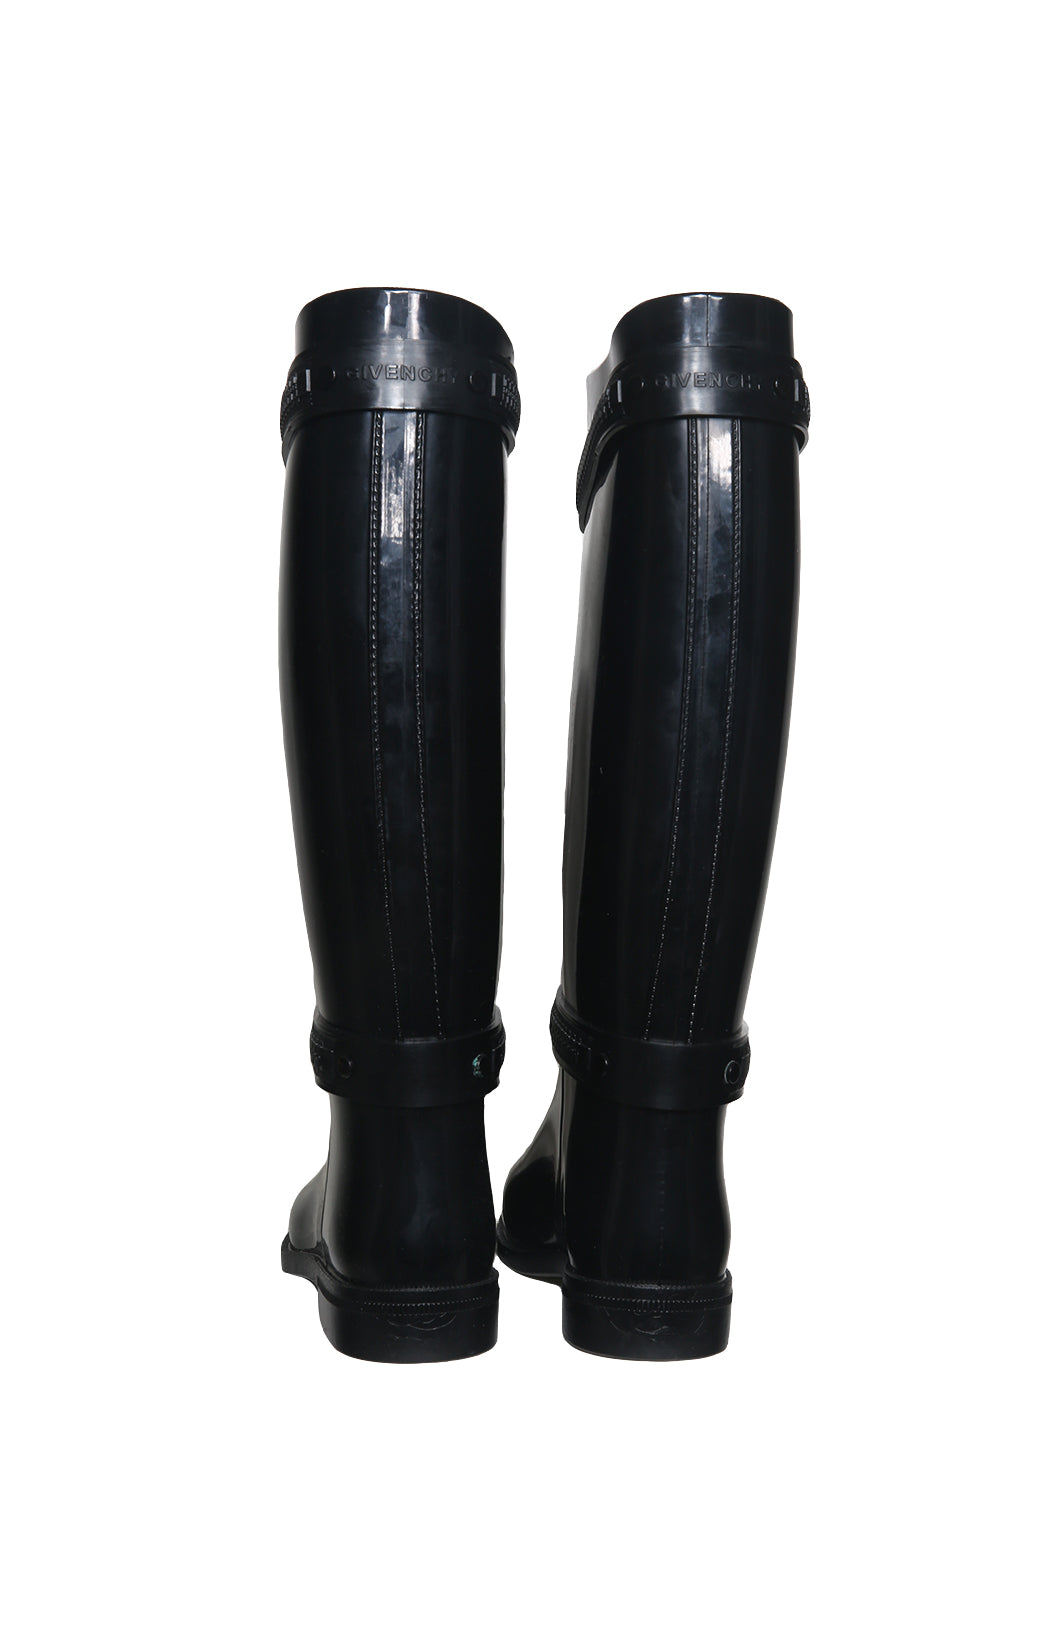 Back view of GIVENCHY Rain Boots